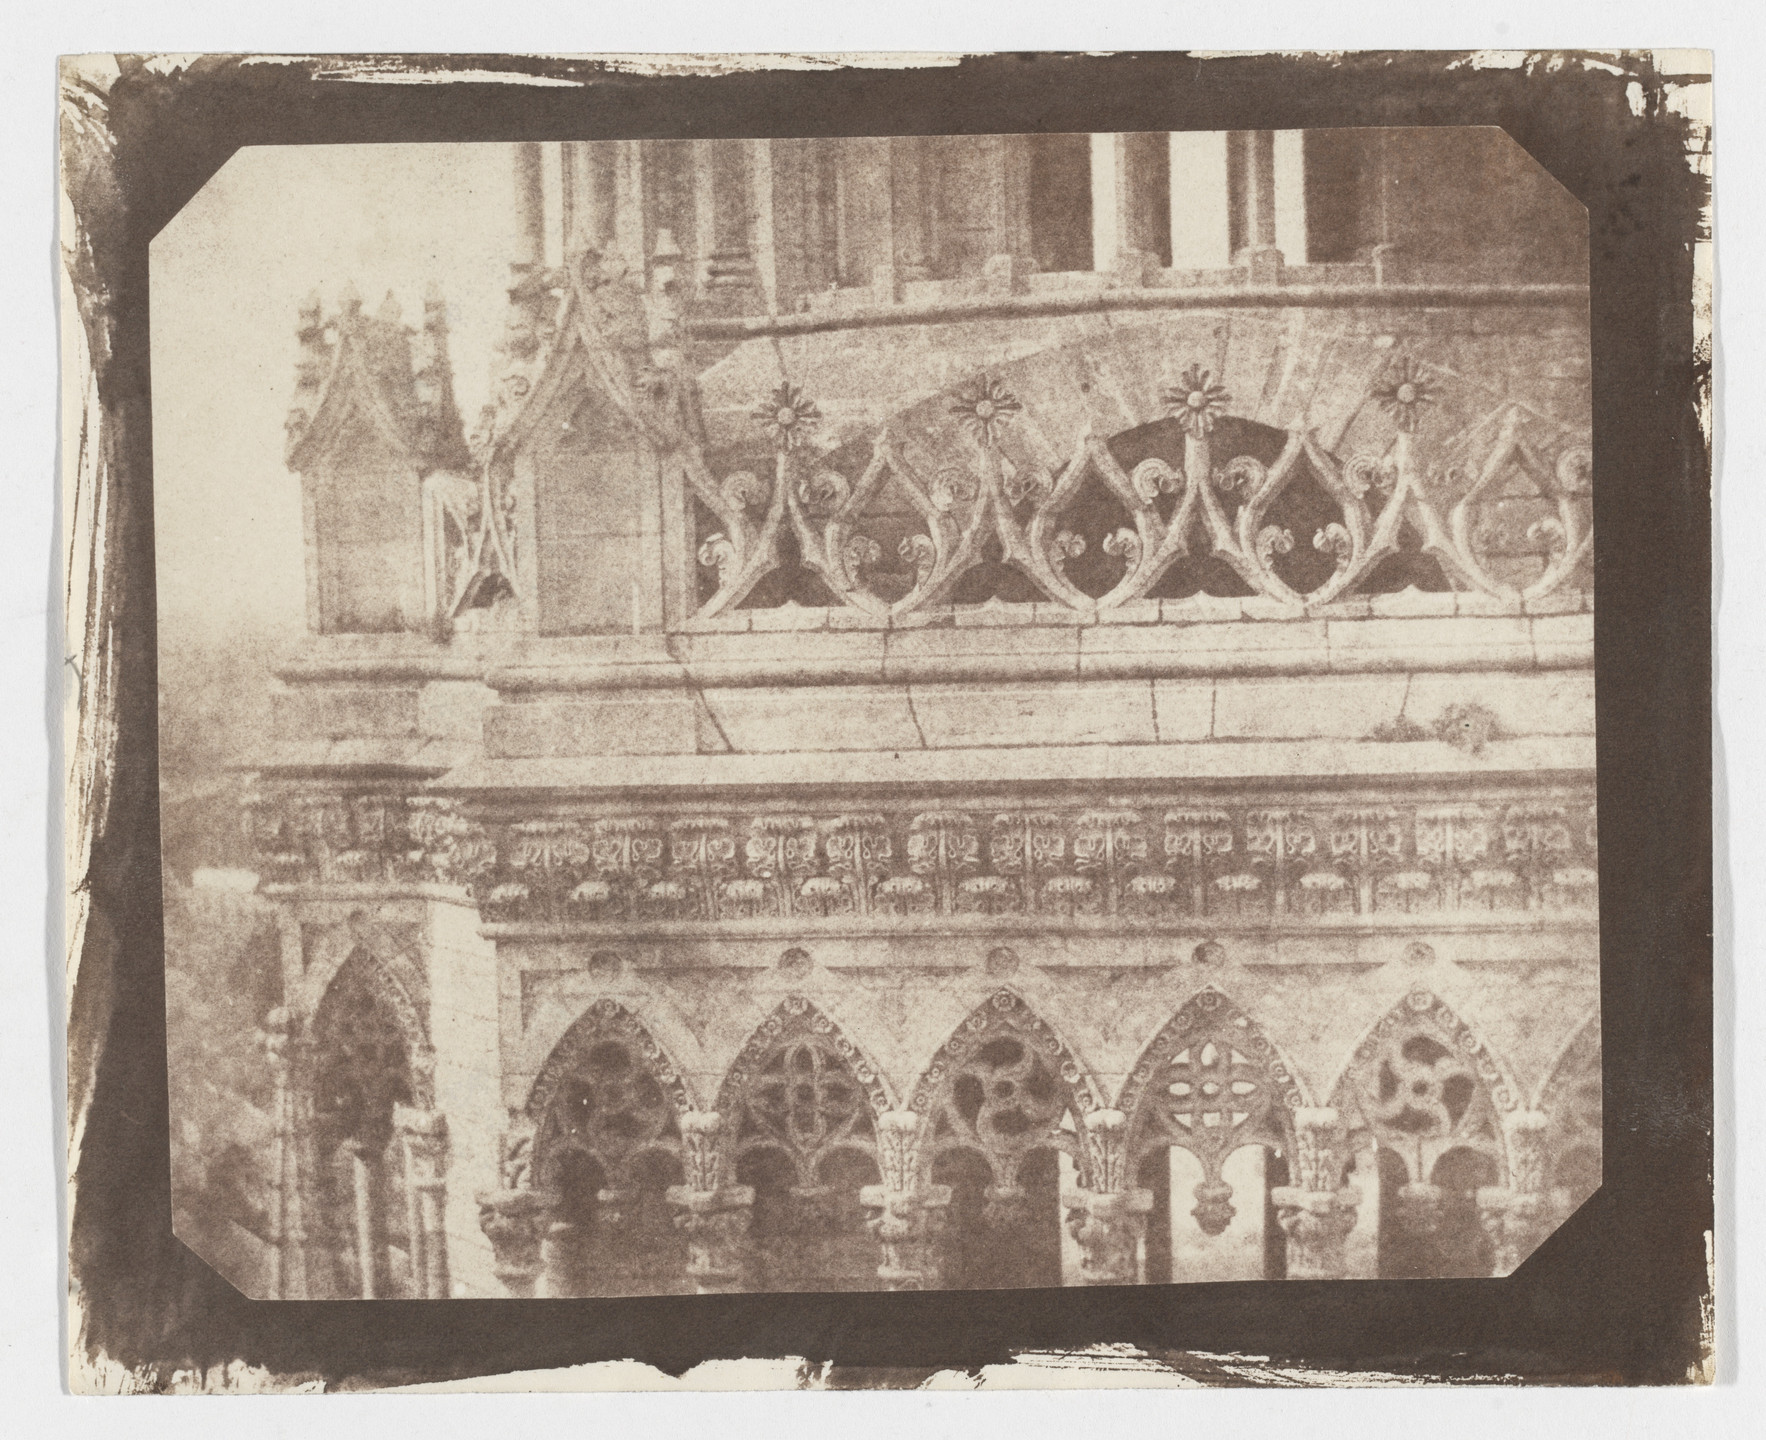 William Henry Fox Talbot. One of the Towers of Orleans Cathedral, as Seen from the Opposite Tower. June 21, 1843